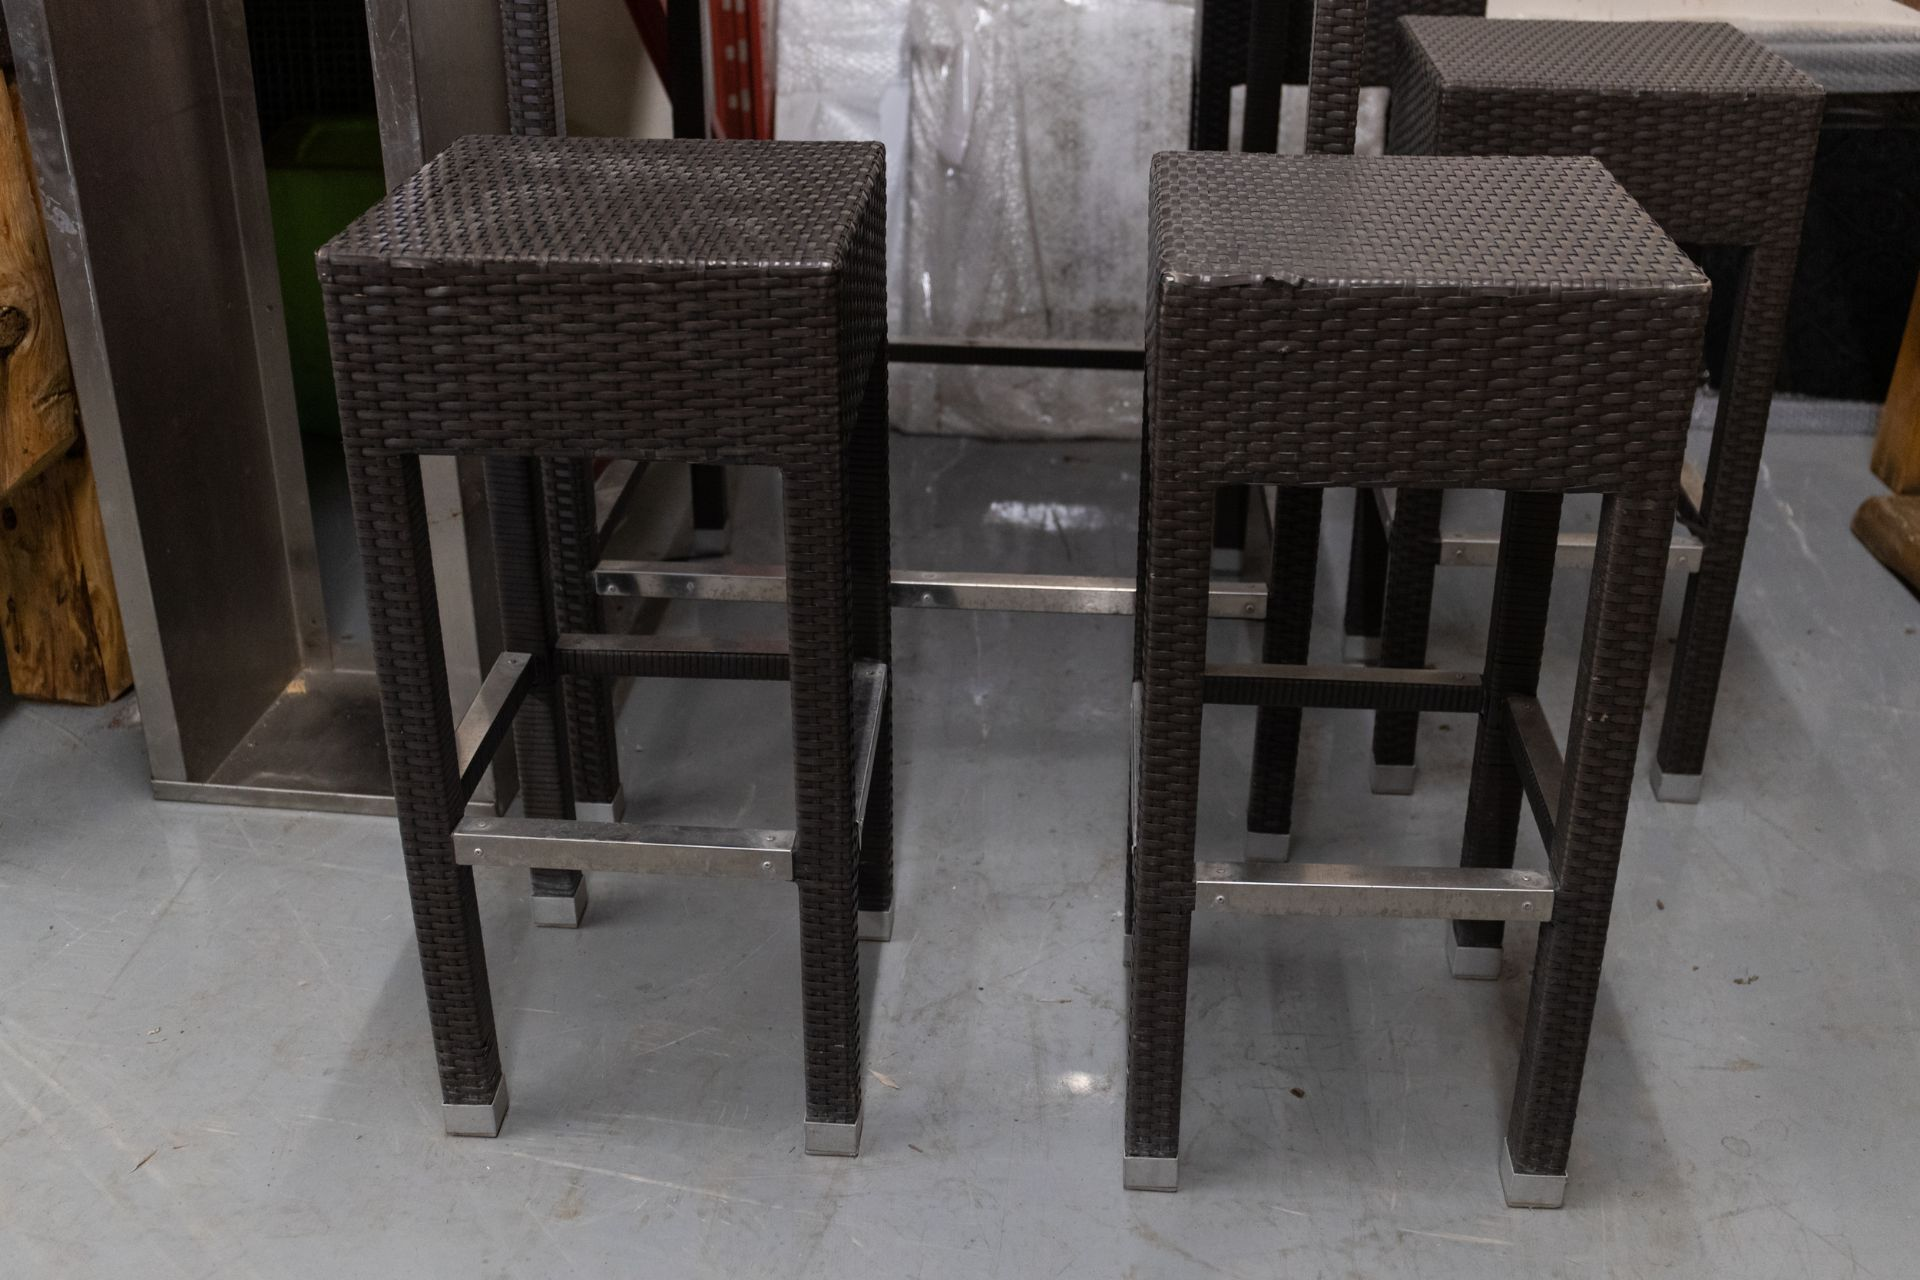 """OUTDOOR FAUX WICKER HIGHTOP TABLE WITH 4 STOOLS H- 43"""" W- 29"""" BY 29"""" - Image 4 of 4"""